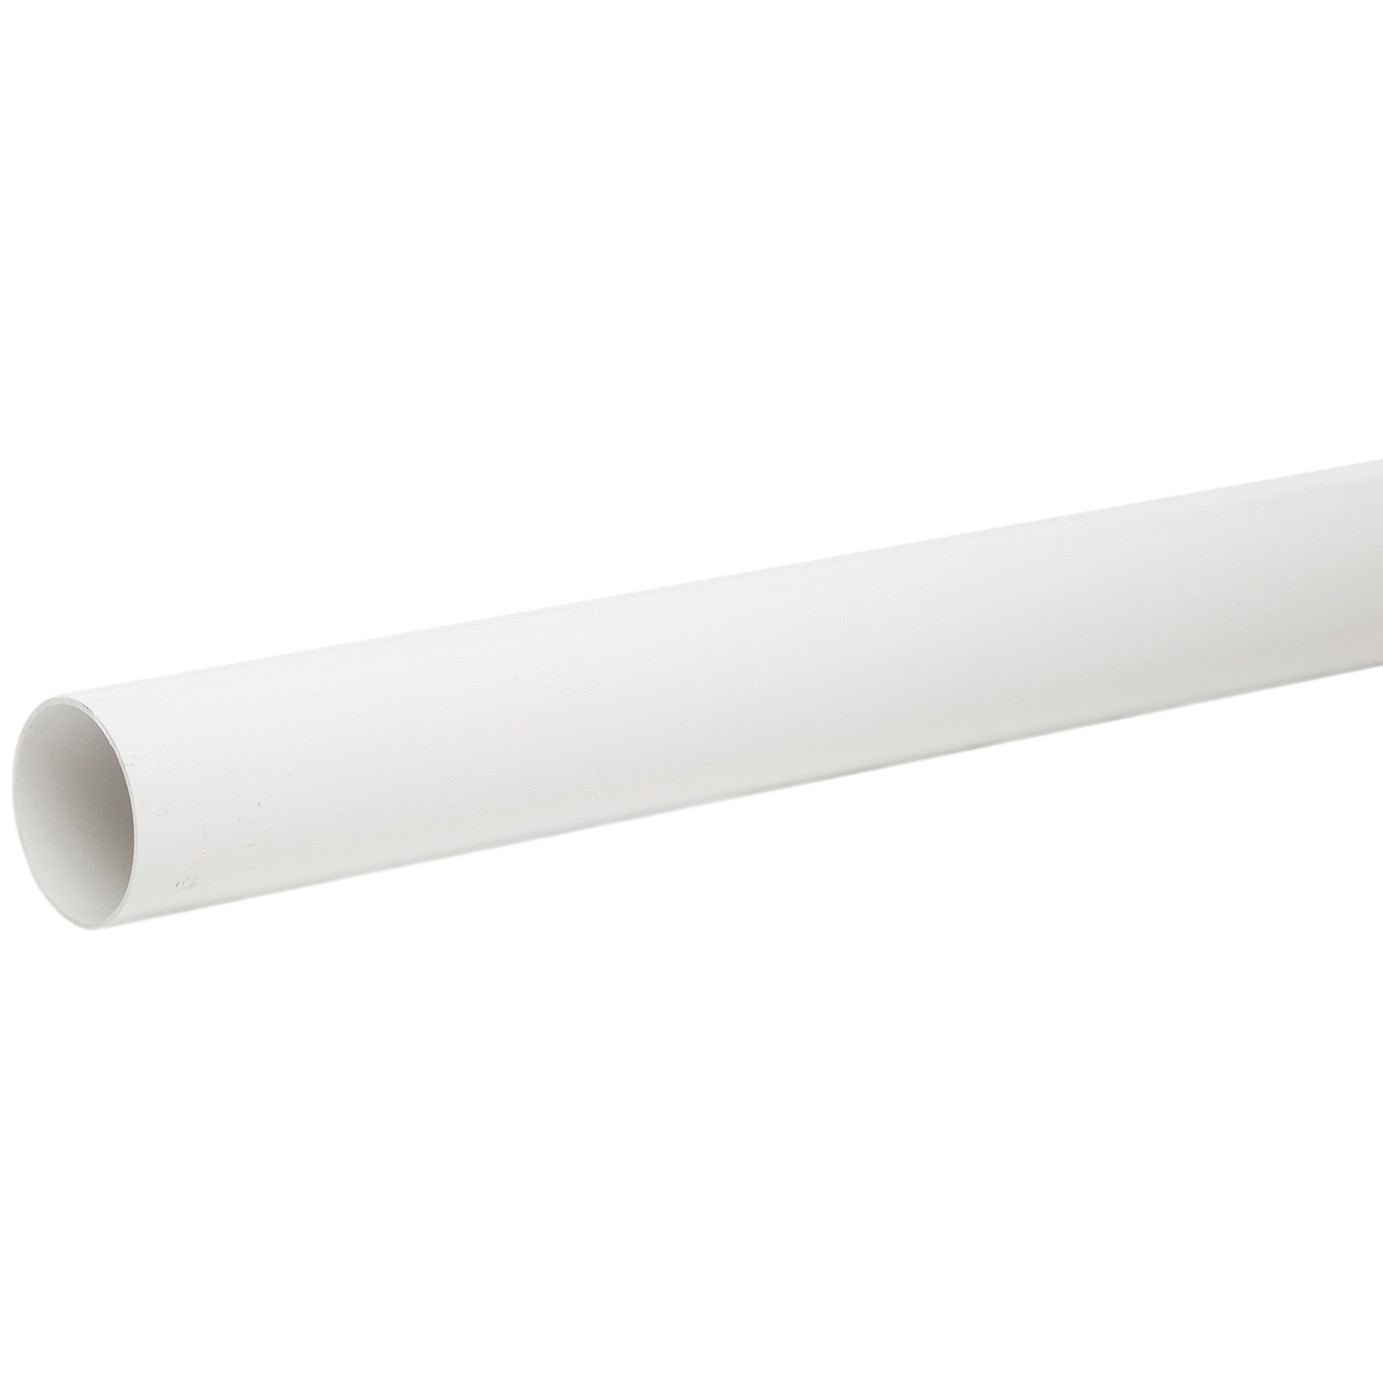 Polypipe 68mm Round Down Pipe (1.25 metre x 2) - White